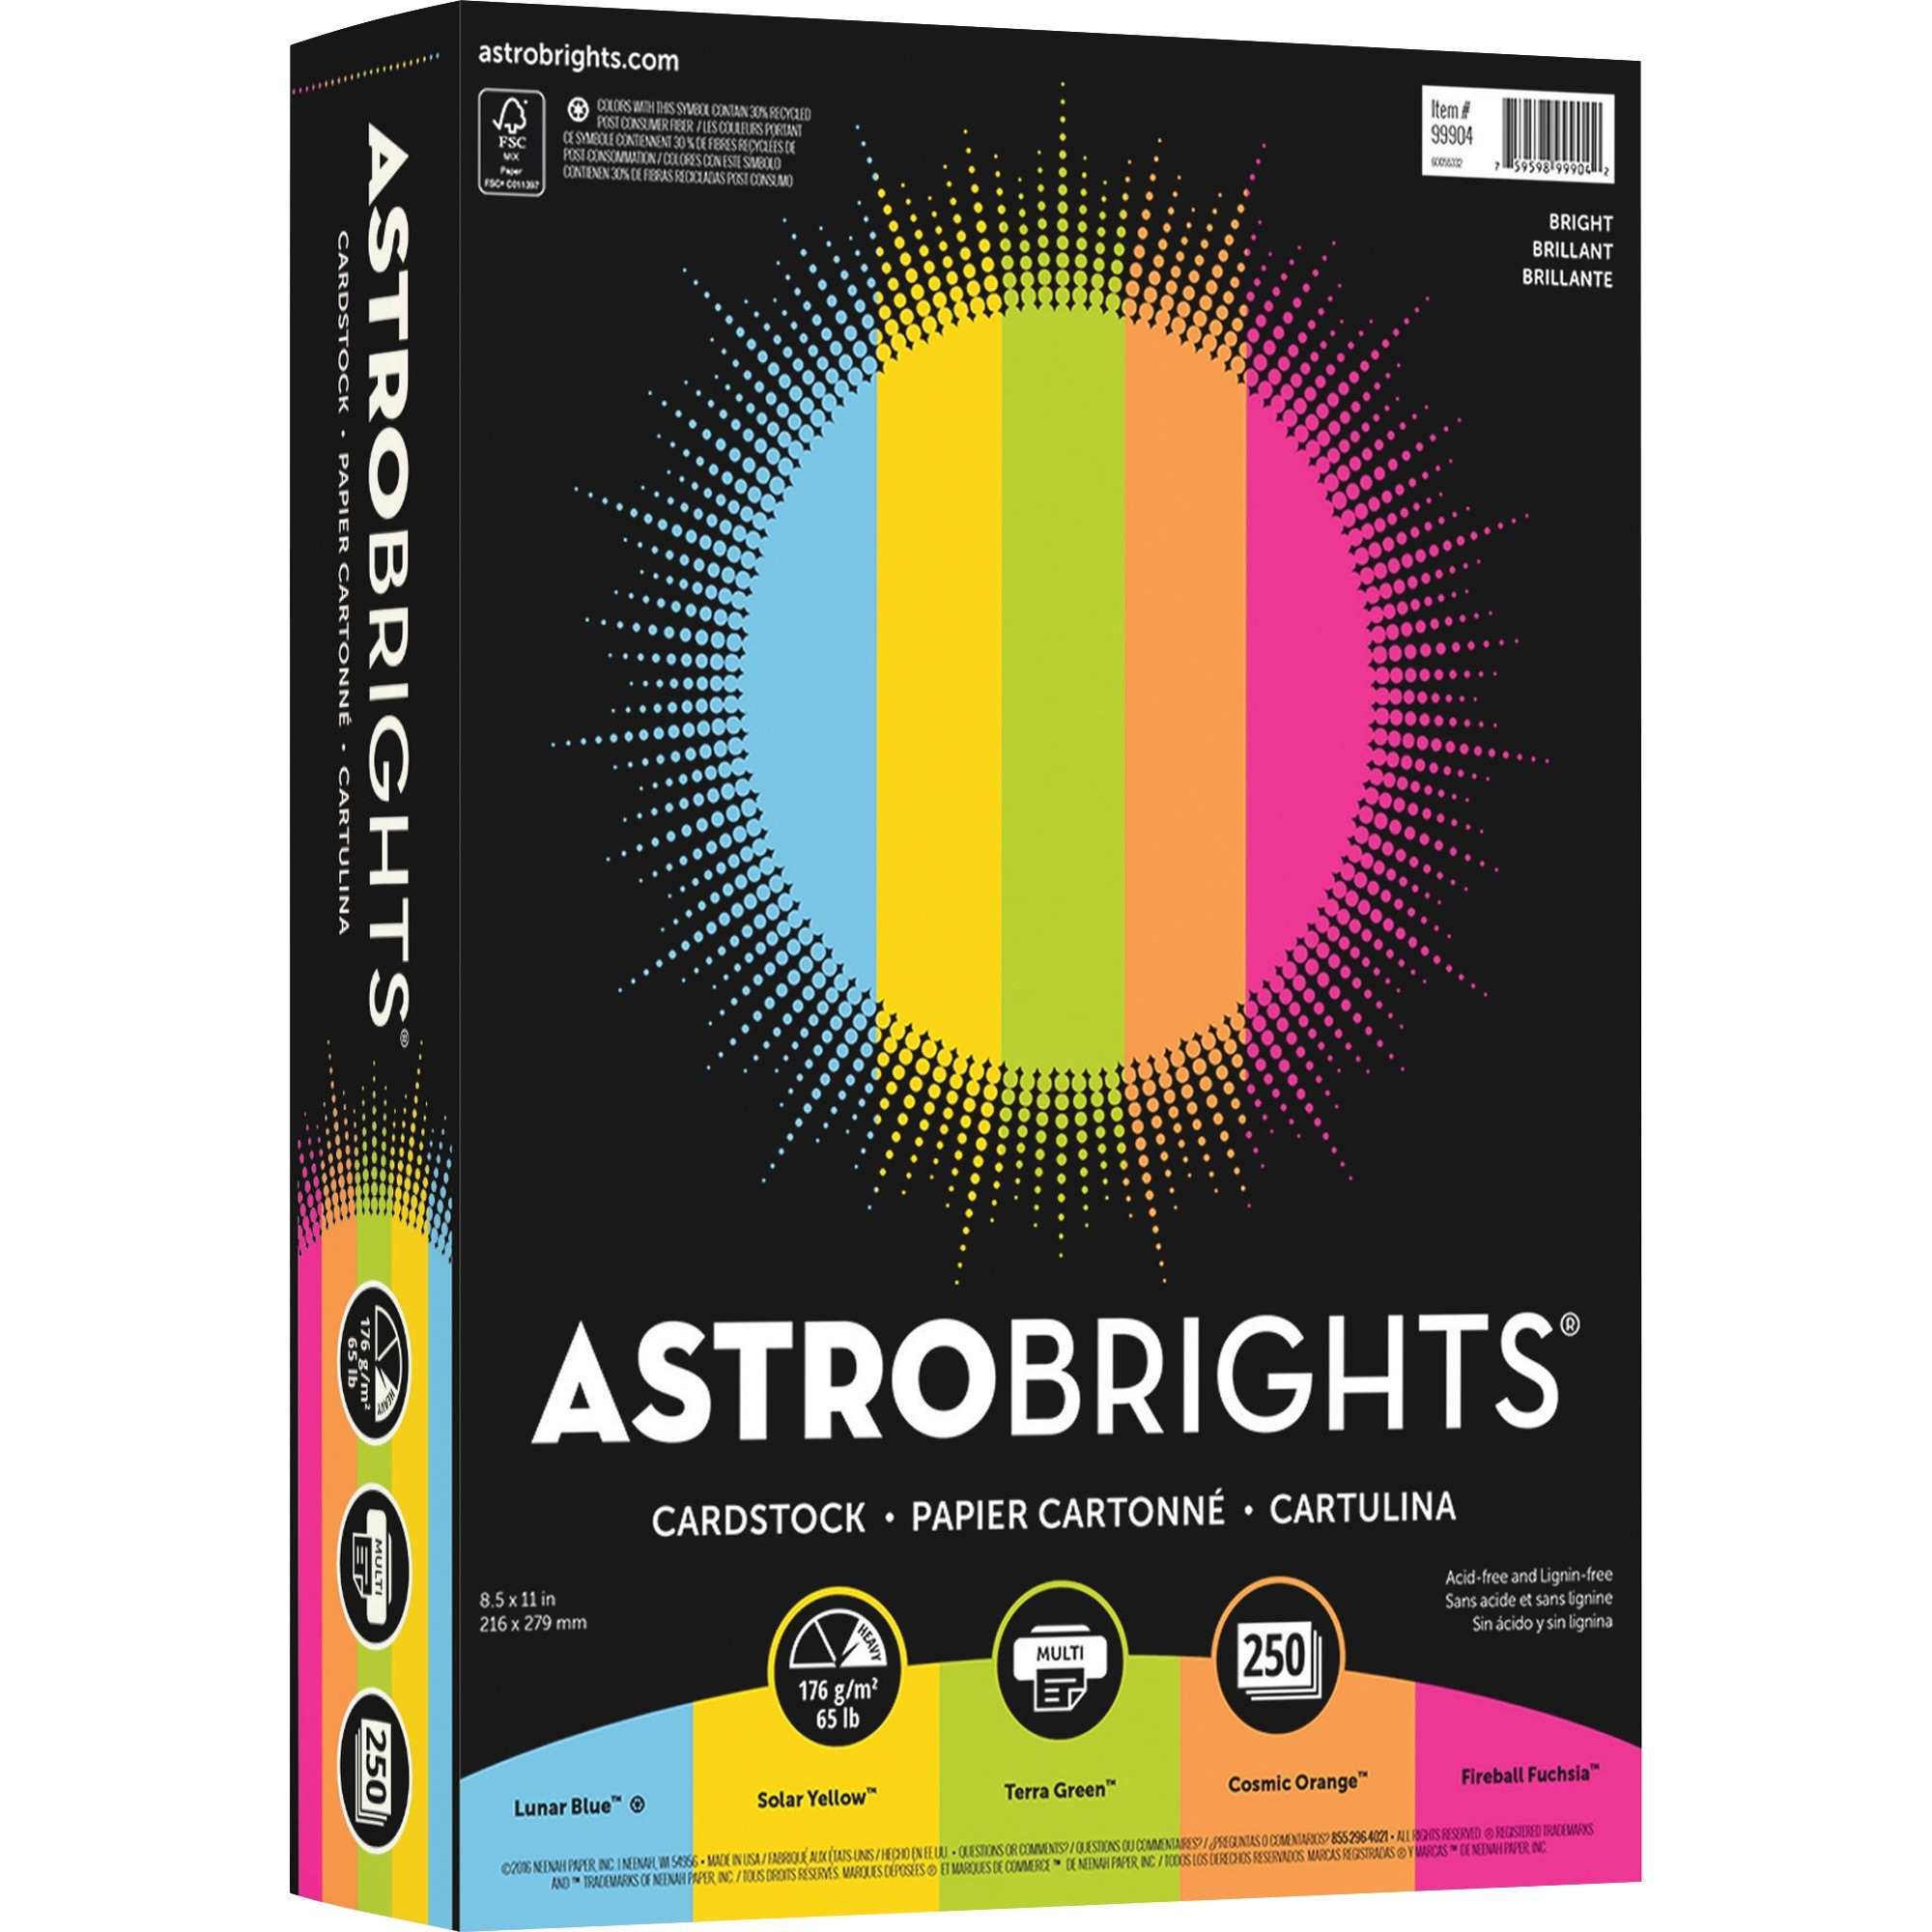 Astrobrights, NEE99904, Colored Cardstock Paper Assortment, 250 / Pack, Lunar Blue,Solar Yellow,Terra Green,Fireball Fuschia,Cosmic Orange